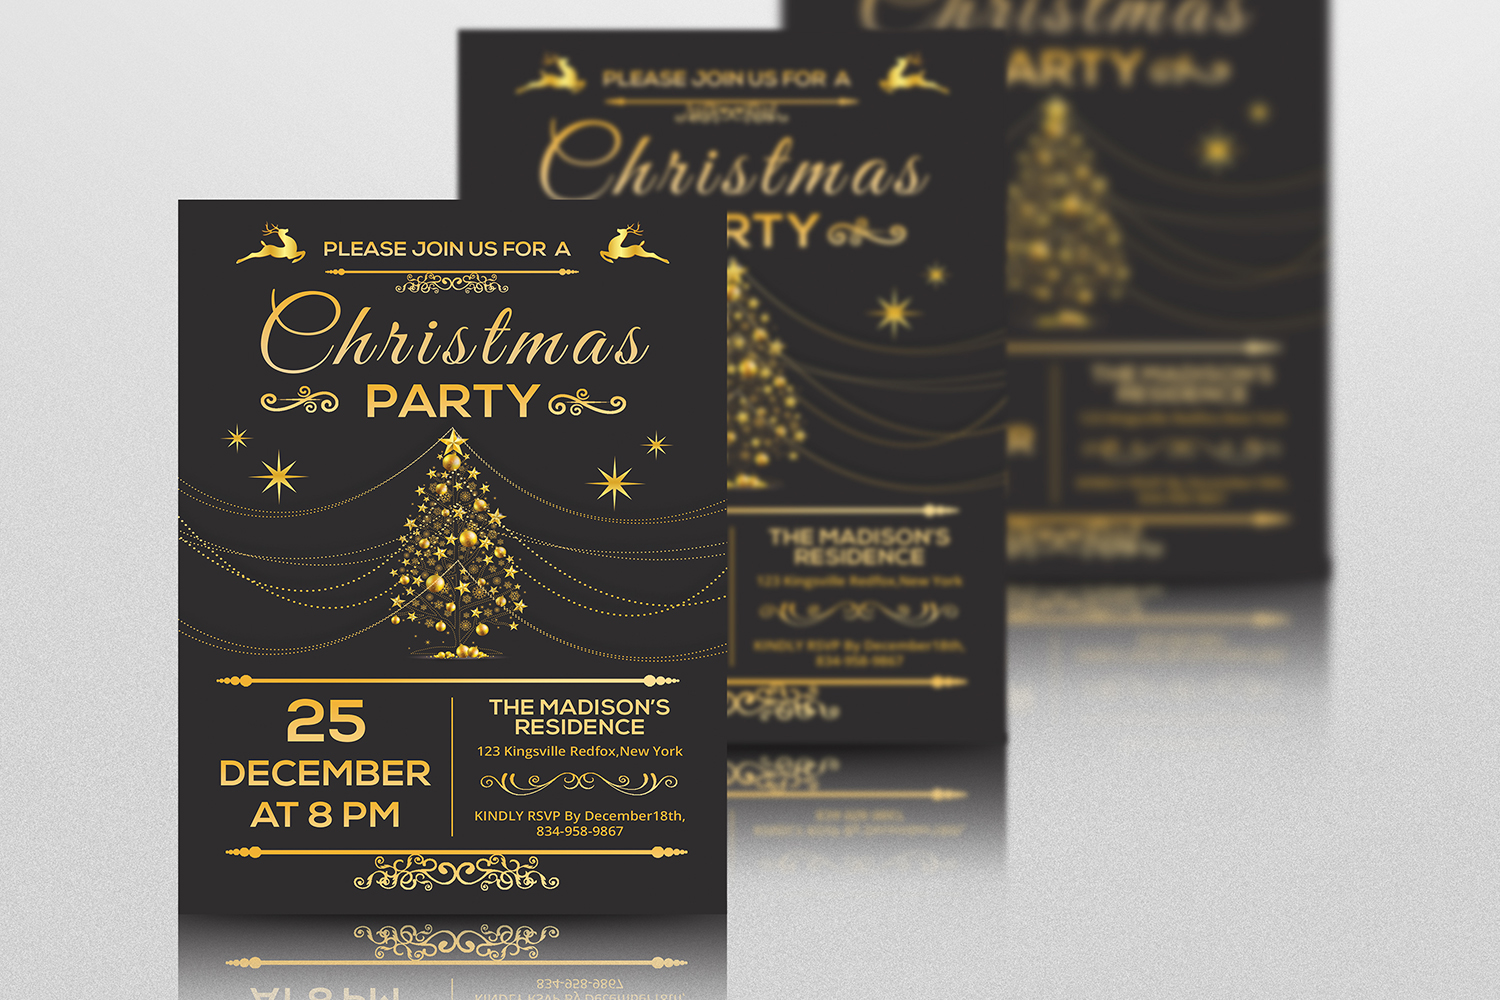 Christmas Party Invitation Flyer example image 4